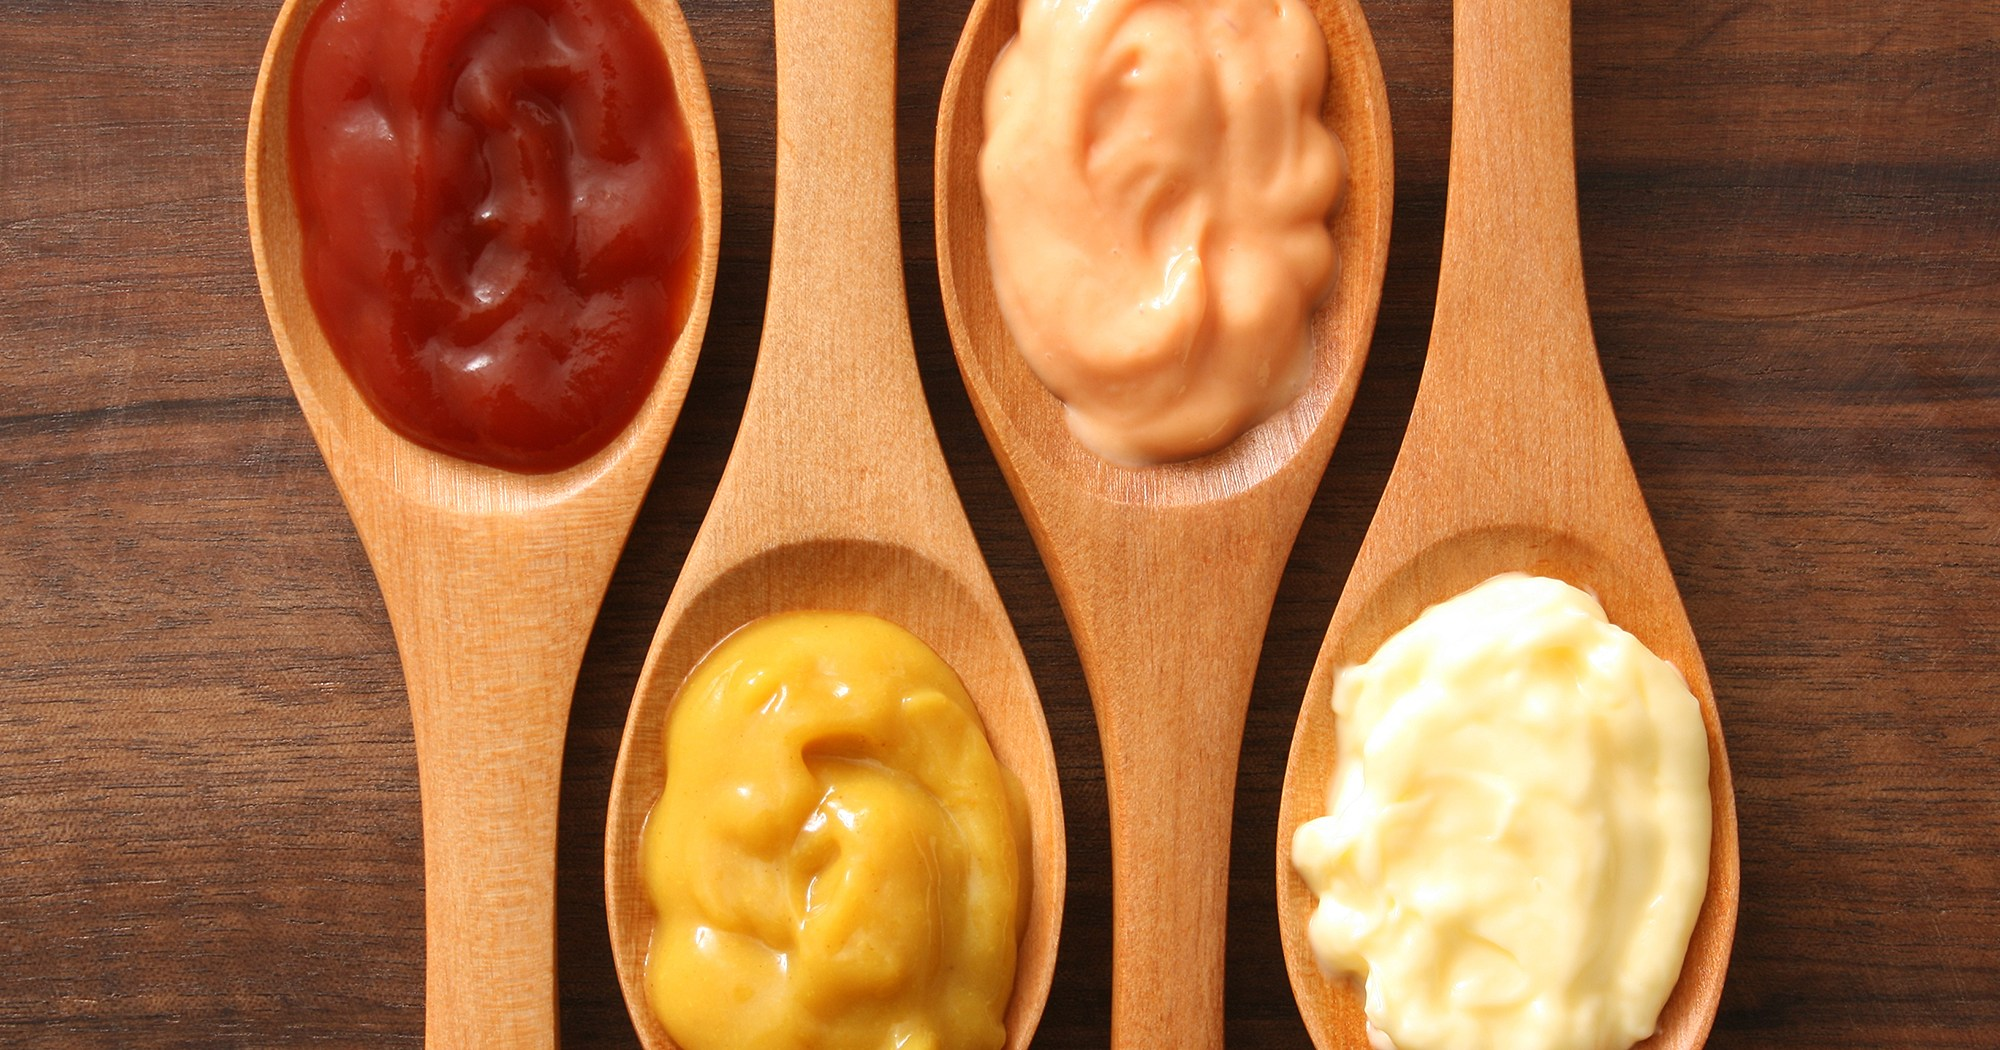 See This List of America's Favorite Condiments by State: Sriracha, Ranch and More